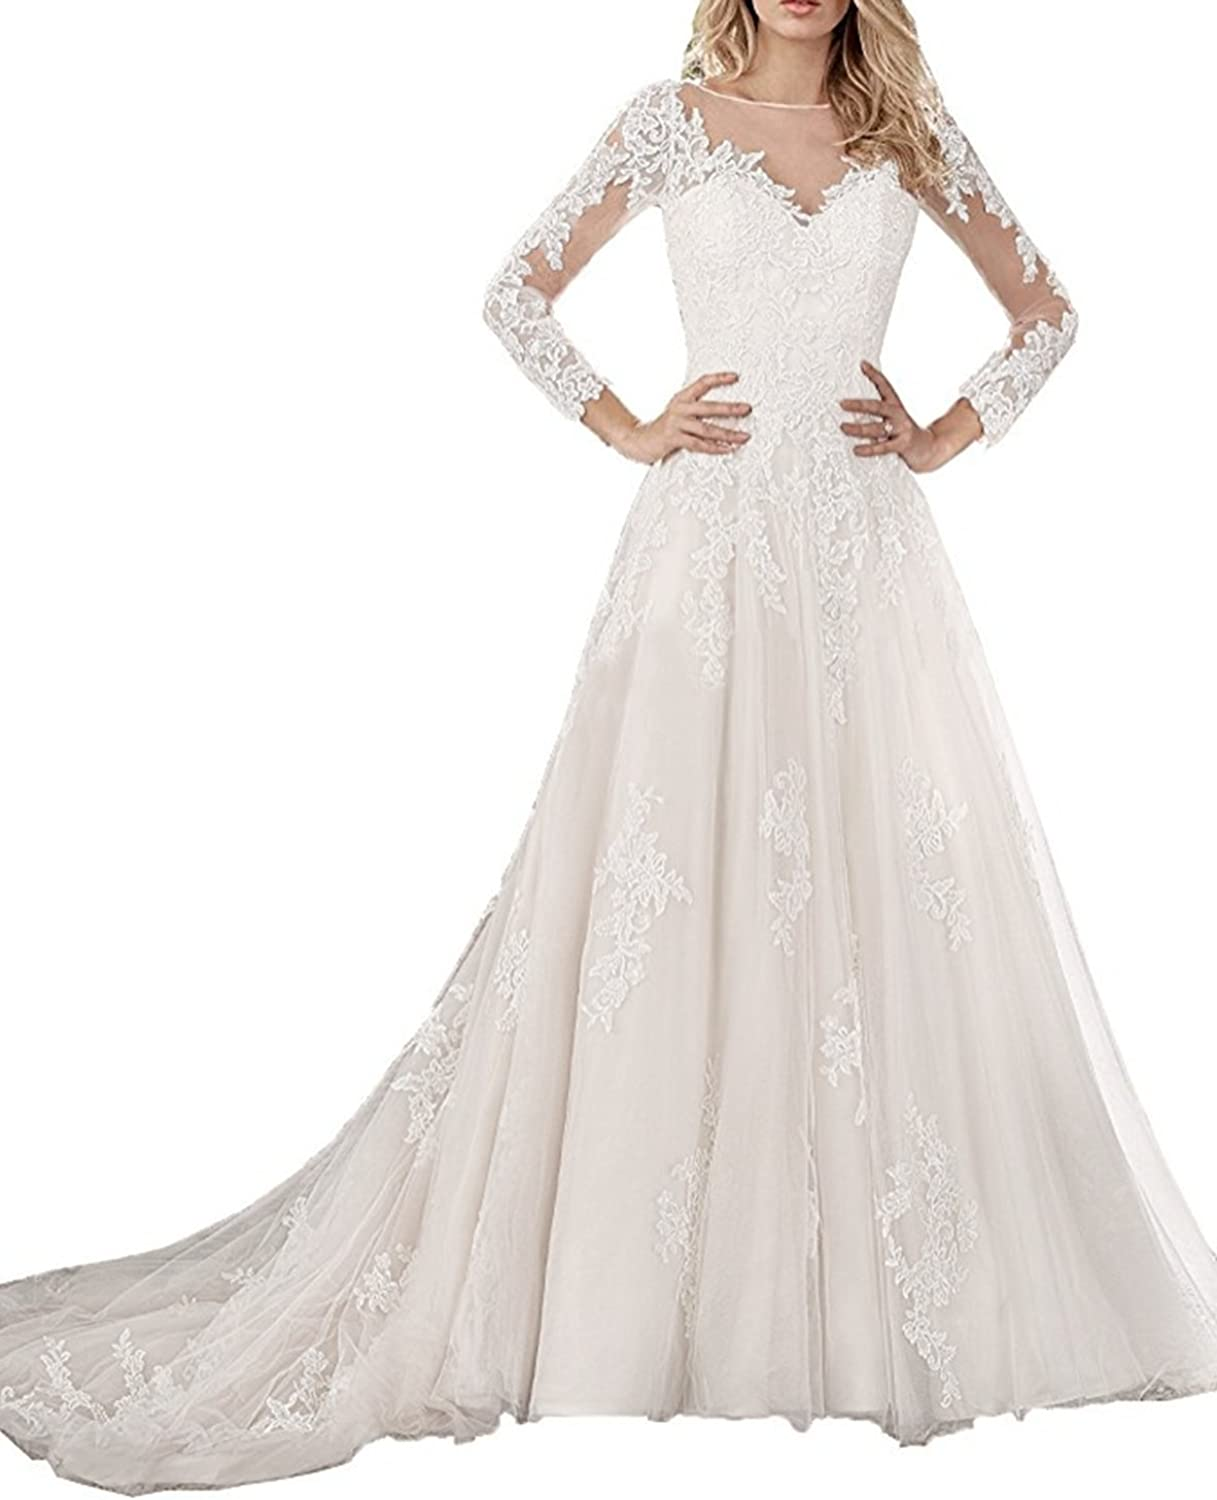 Ruiyuhong Illusion Neck Lace Bridal Dress Long Sleeve Tulle Wedding Gown RHS58